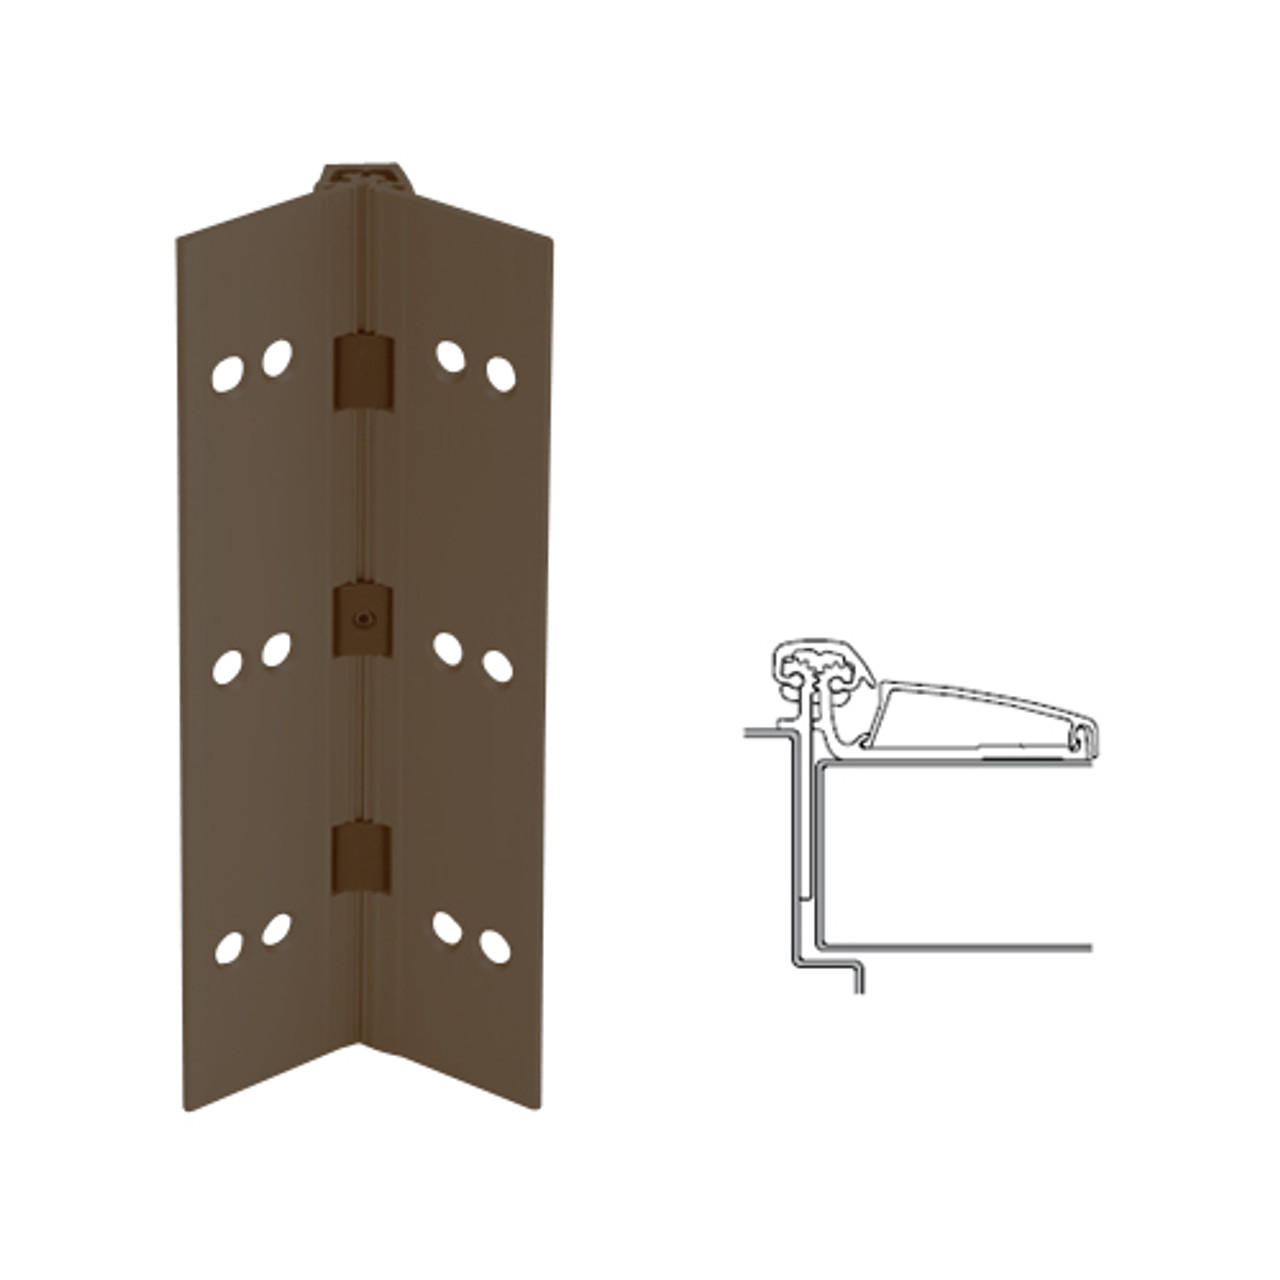 045XY-313AN-95-WD IVES Adjustable Half Surface Continuous Geared Hinges with Wood Screws in Dark Bronze Anodized